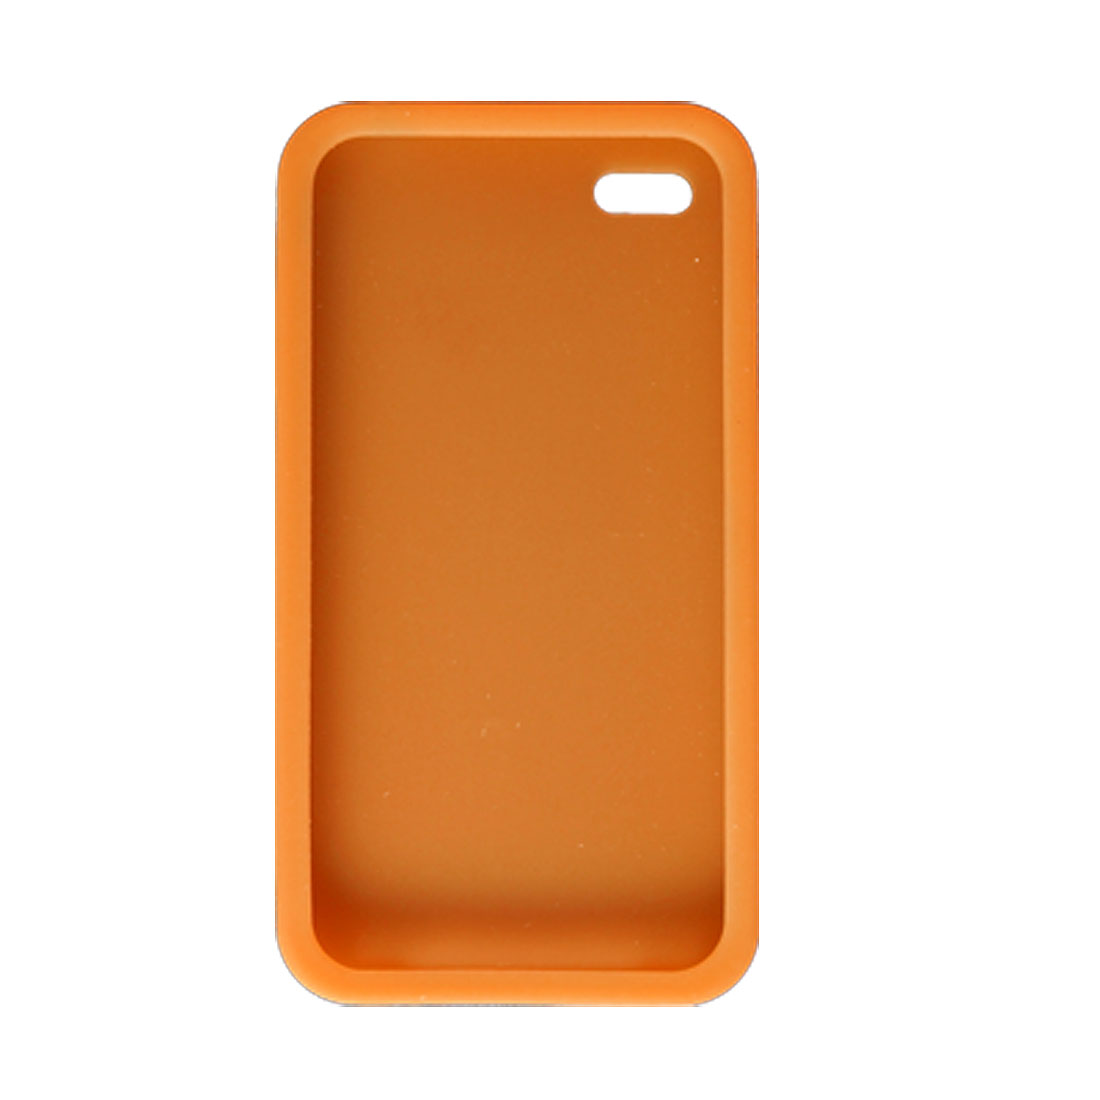 Orange Soft Silicone Skin Protector Case for Apple iPhone 4 4G